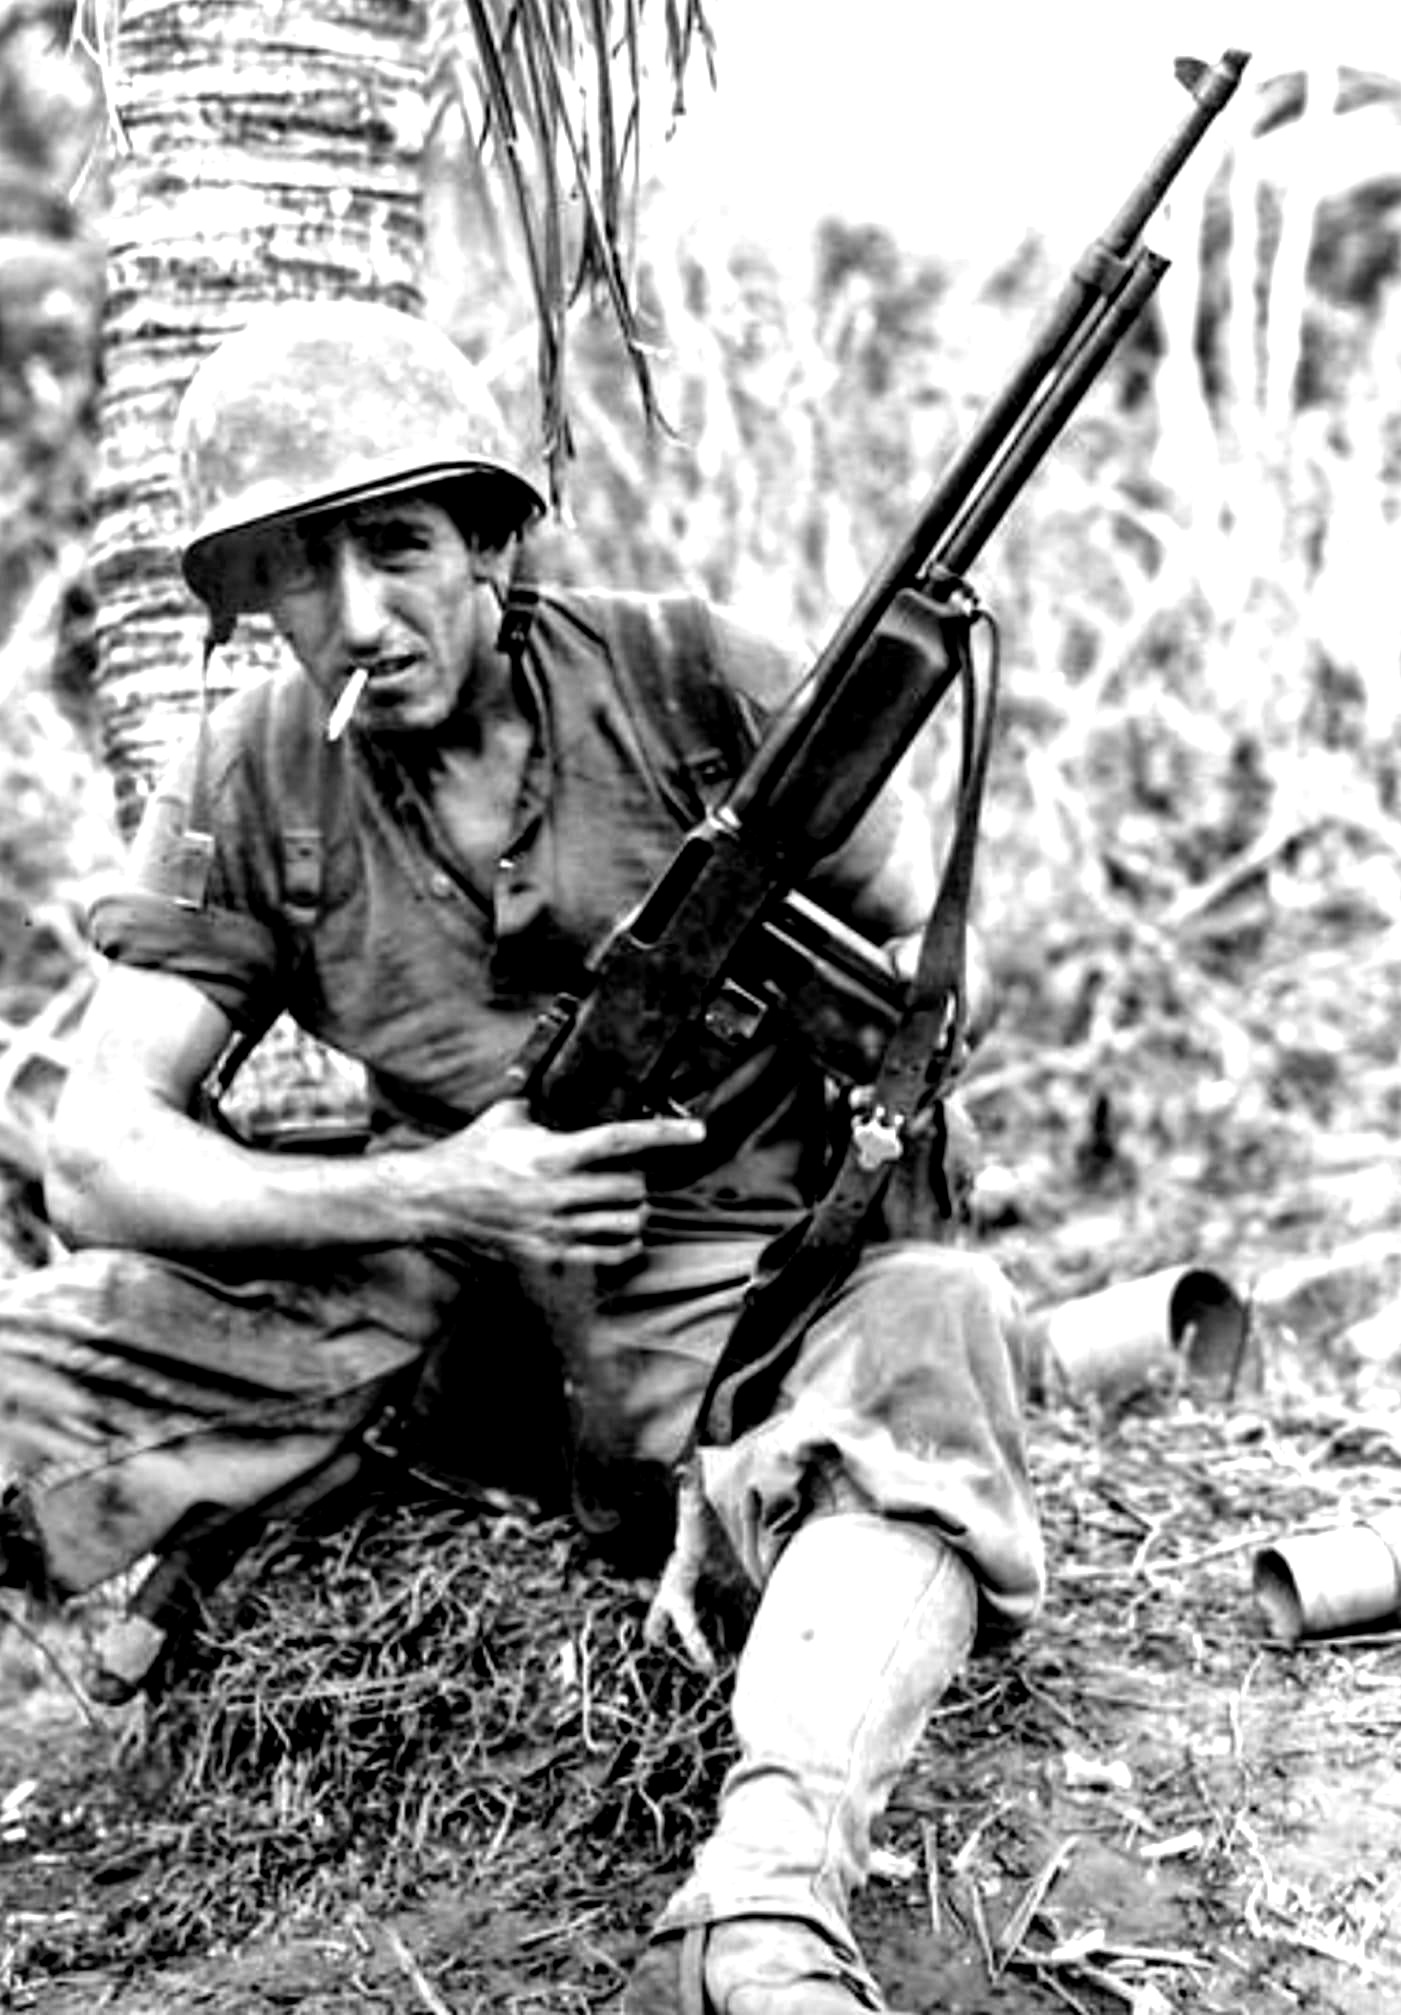 Pfc. Henry J. Latanski of the U.S. 24th Infantry Division is credited with shooting 25 enemy soldiers with his BAR during the Japanese attack of October 21, 1944 on Leyte Island, Philippines